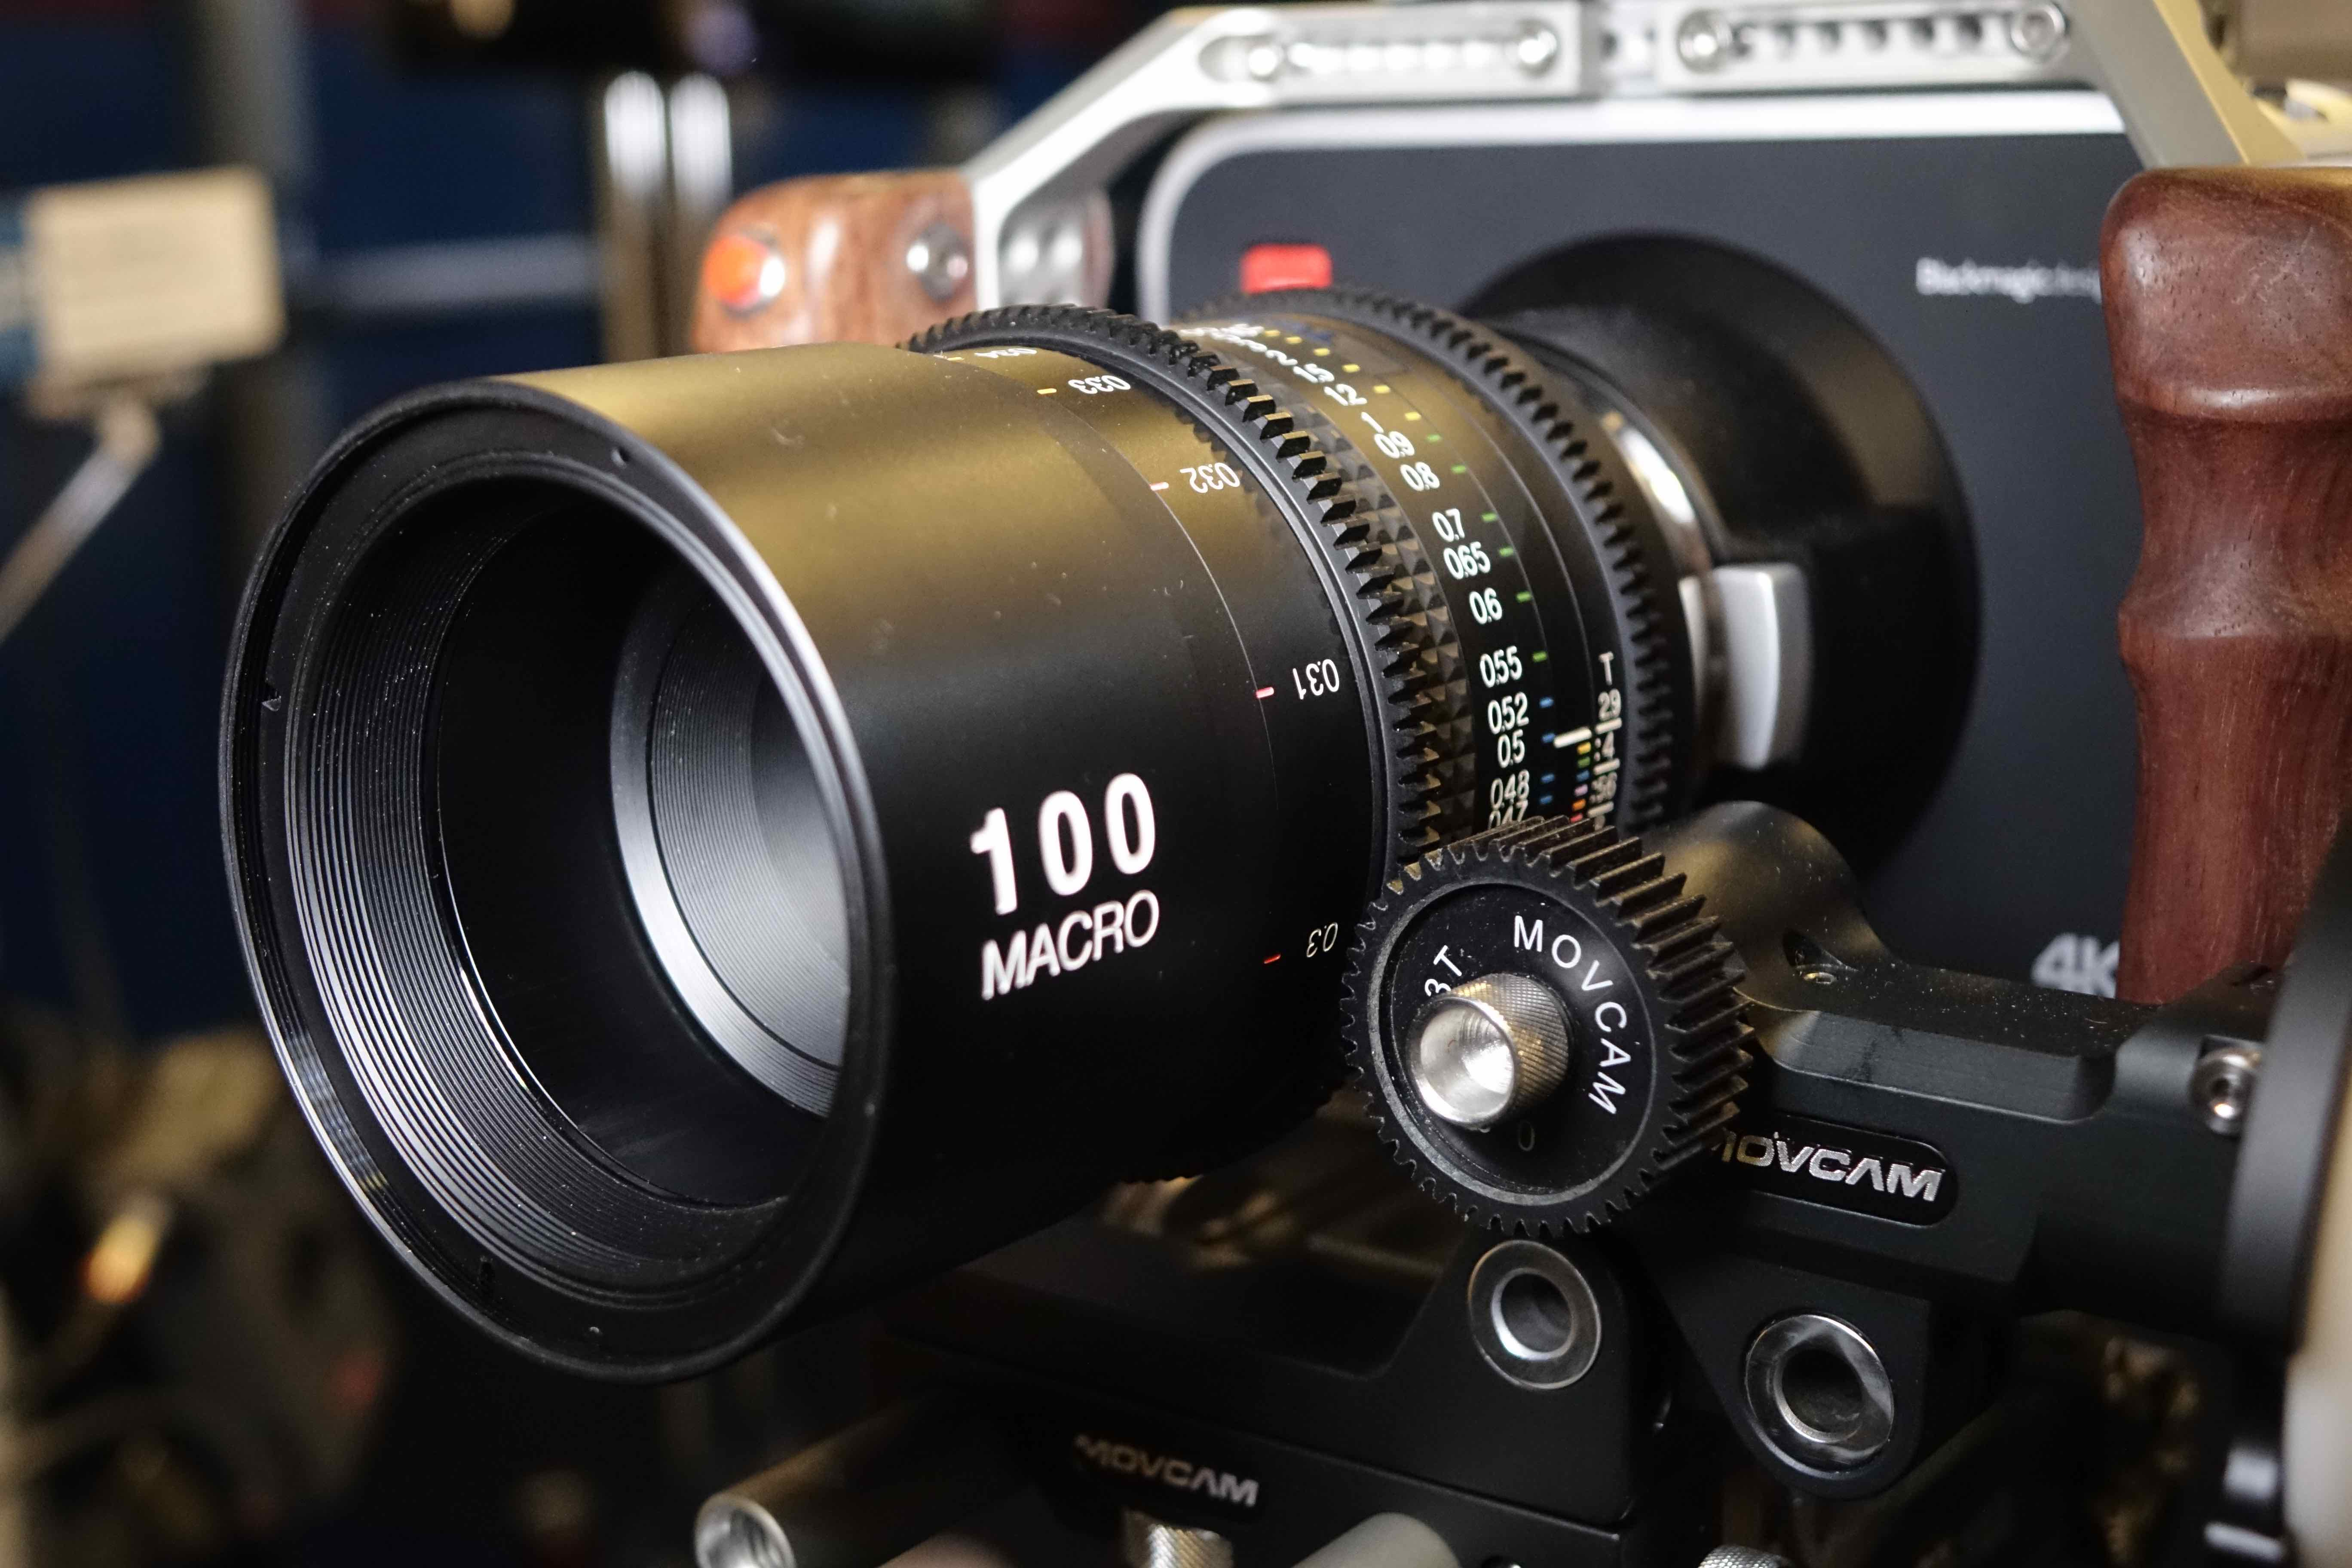 IBC 2015: Tokina shows new 100mm Cine Macro lens, 11-16mm PL mount